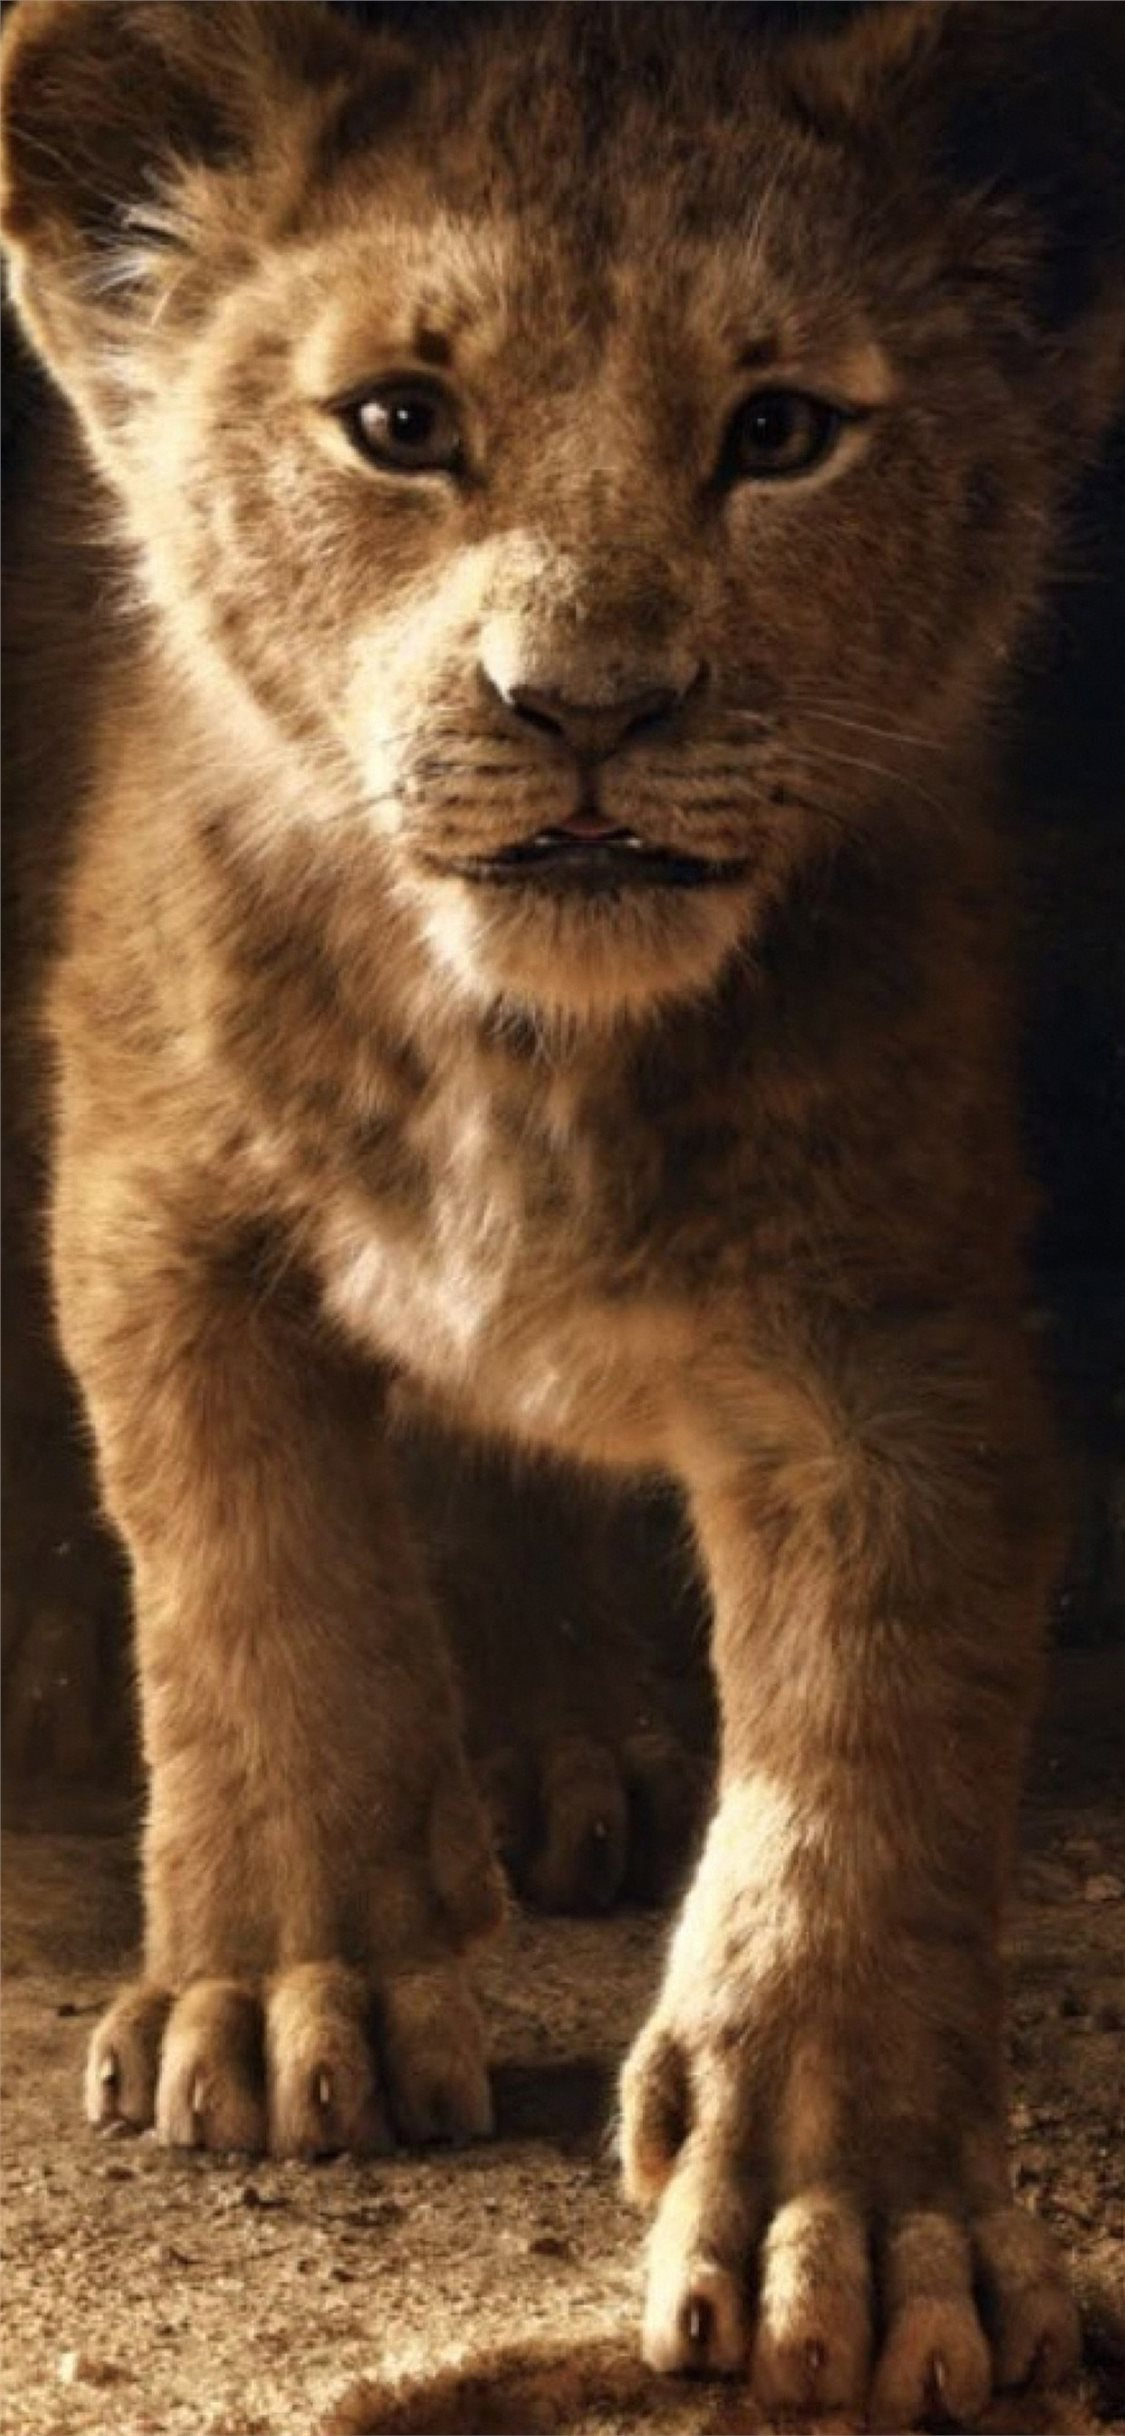 The Lion King Simba 2019 4k Iphone X Wallpapers Free Download